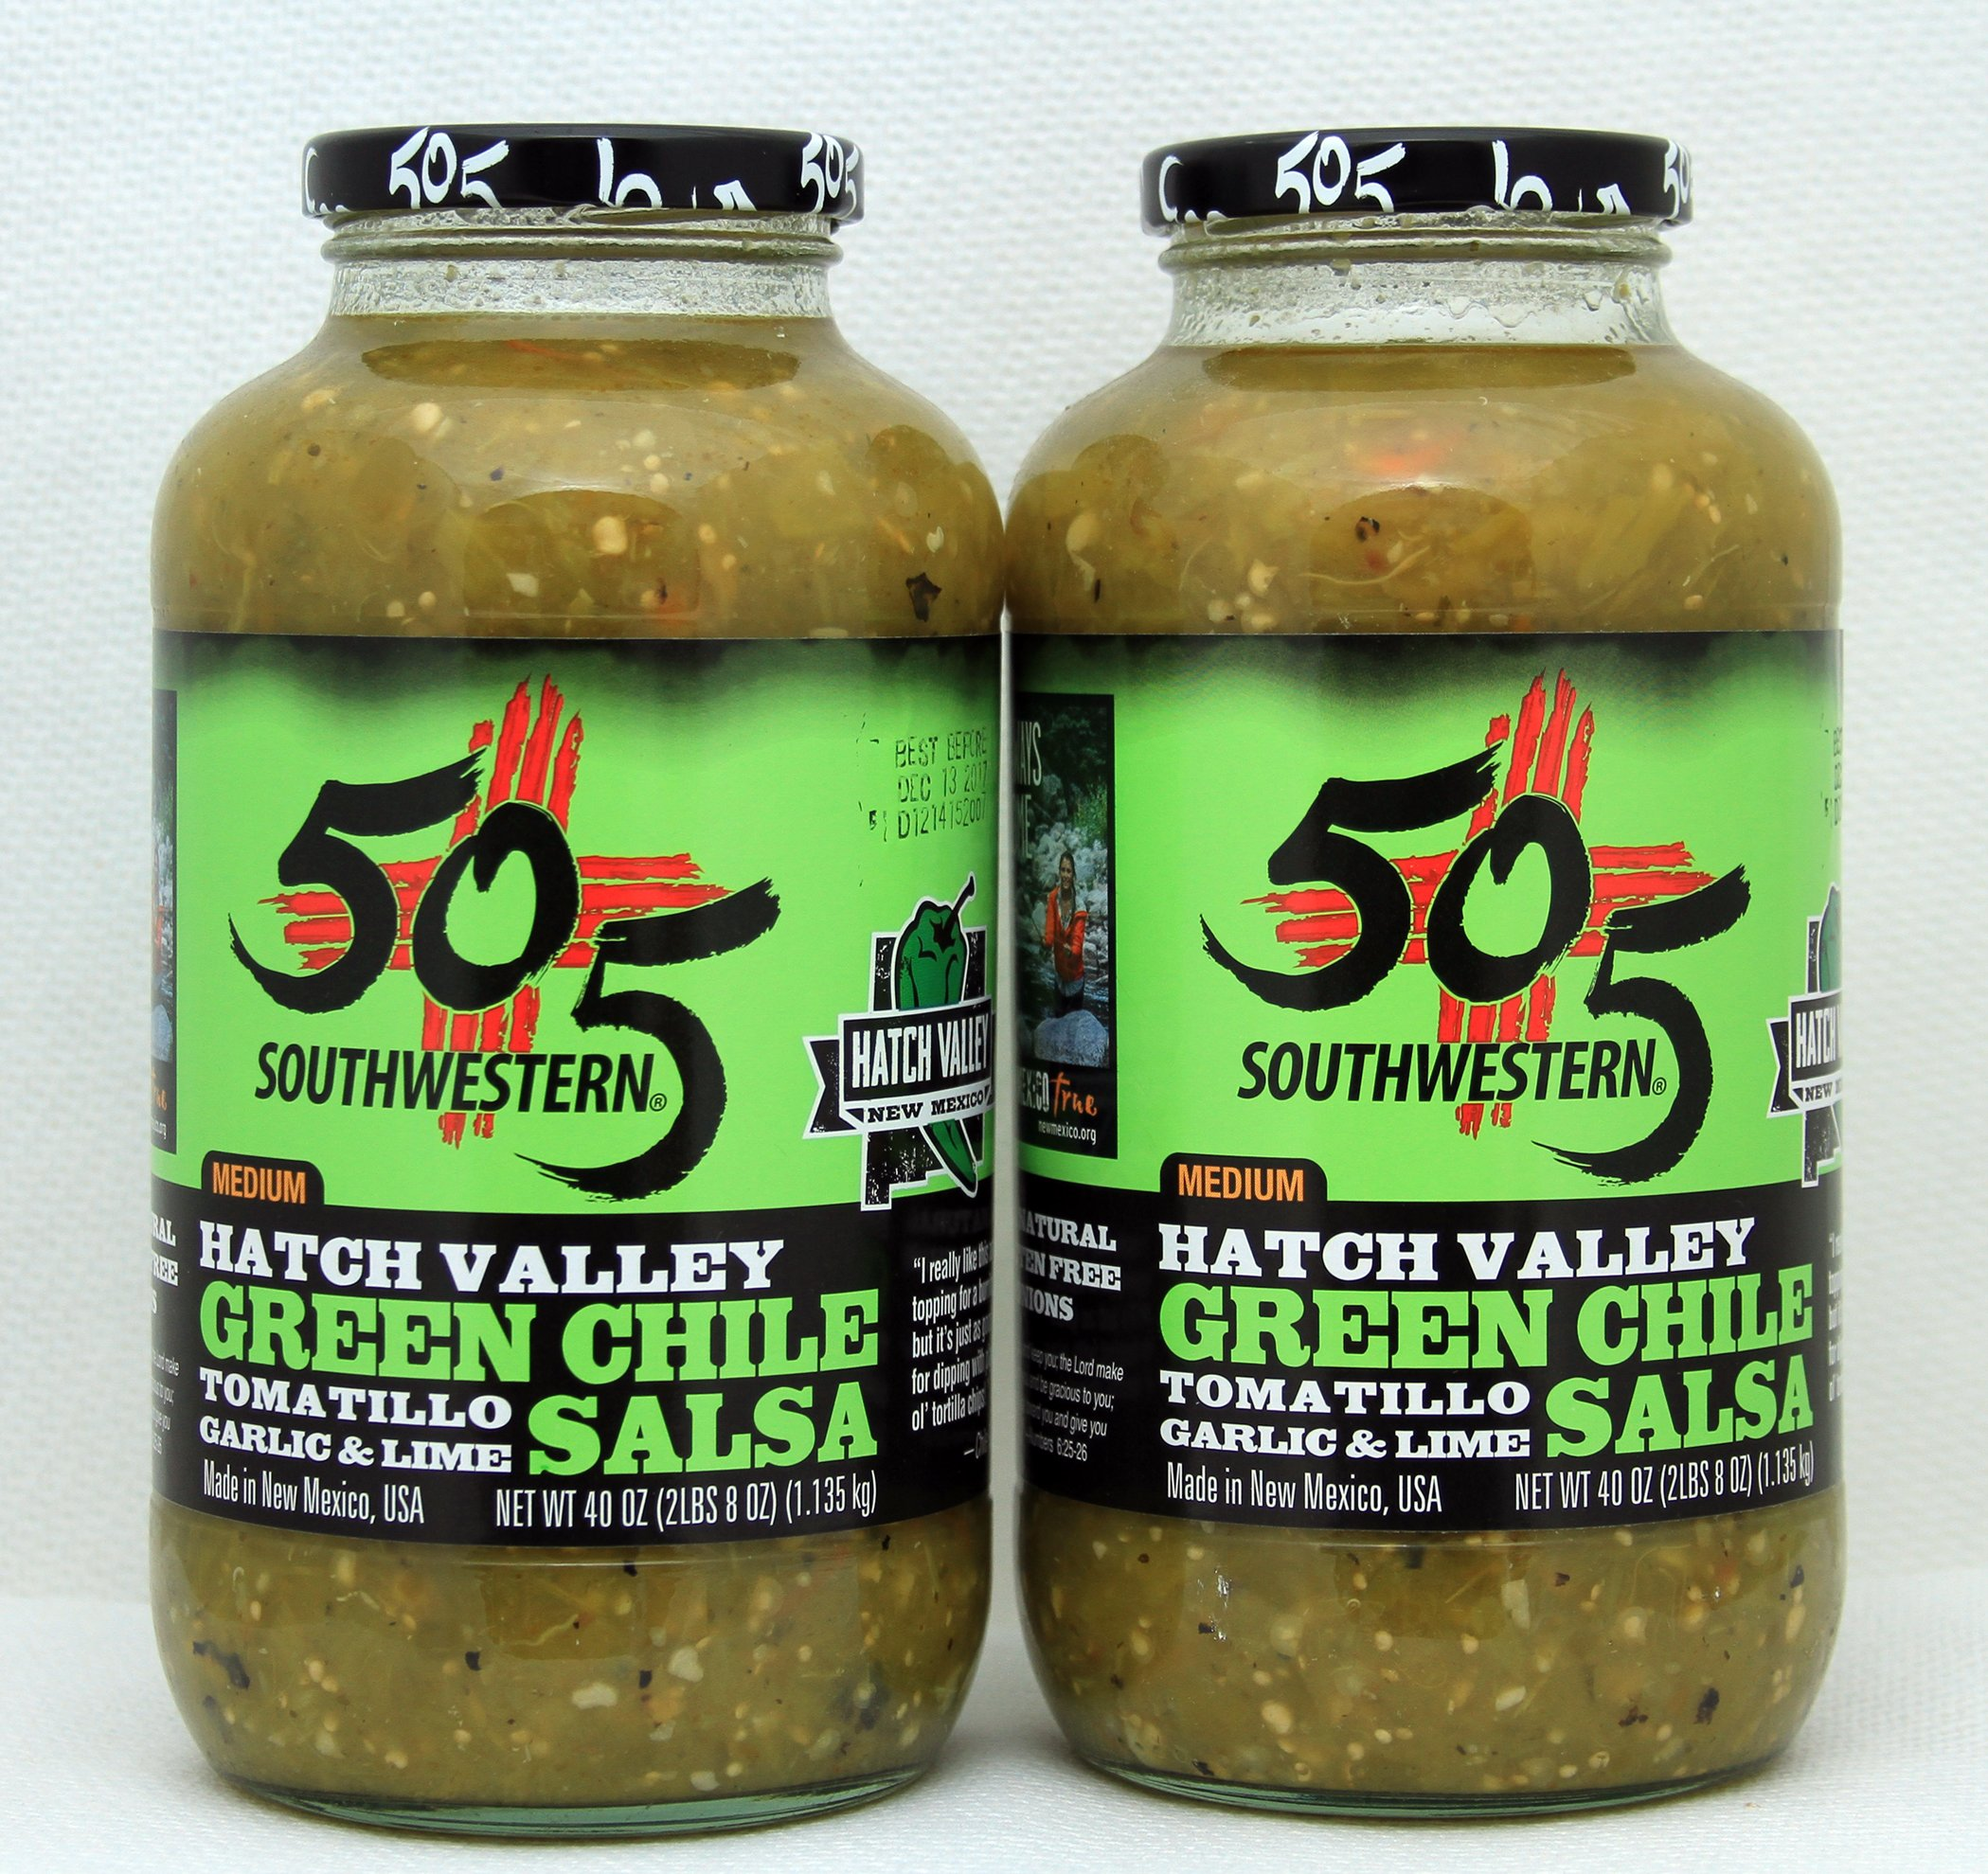 505 Southwestern Hatch Valley Green Chile Salsa Party Pack (2- 40 OZ ) by 505 Southwestern (Image #1)